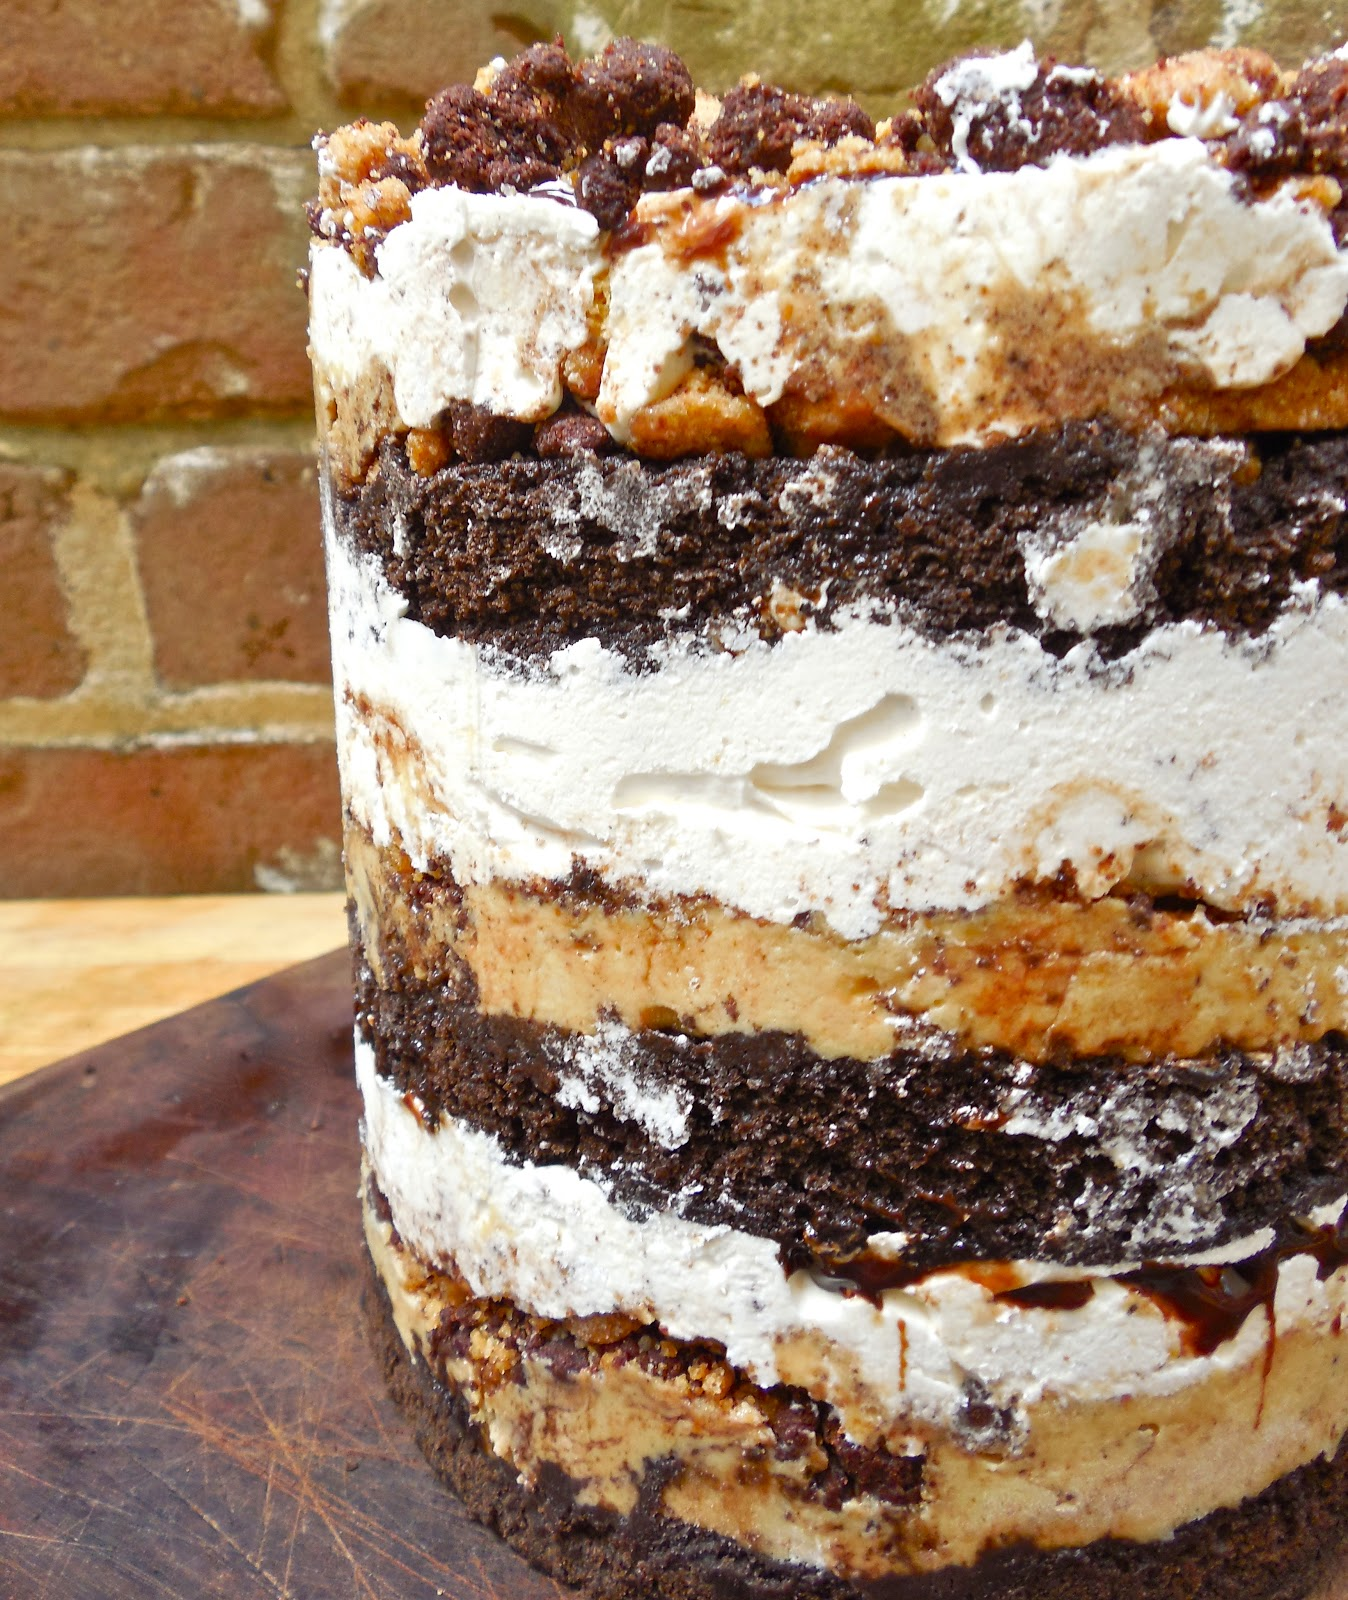 mores Layer Cake with Chocolate Fudge Cake, Malted Cake Soak, Malted ...